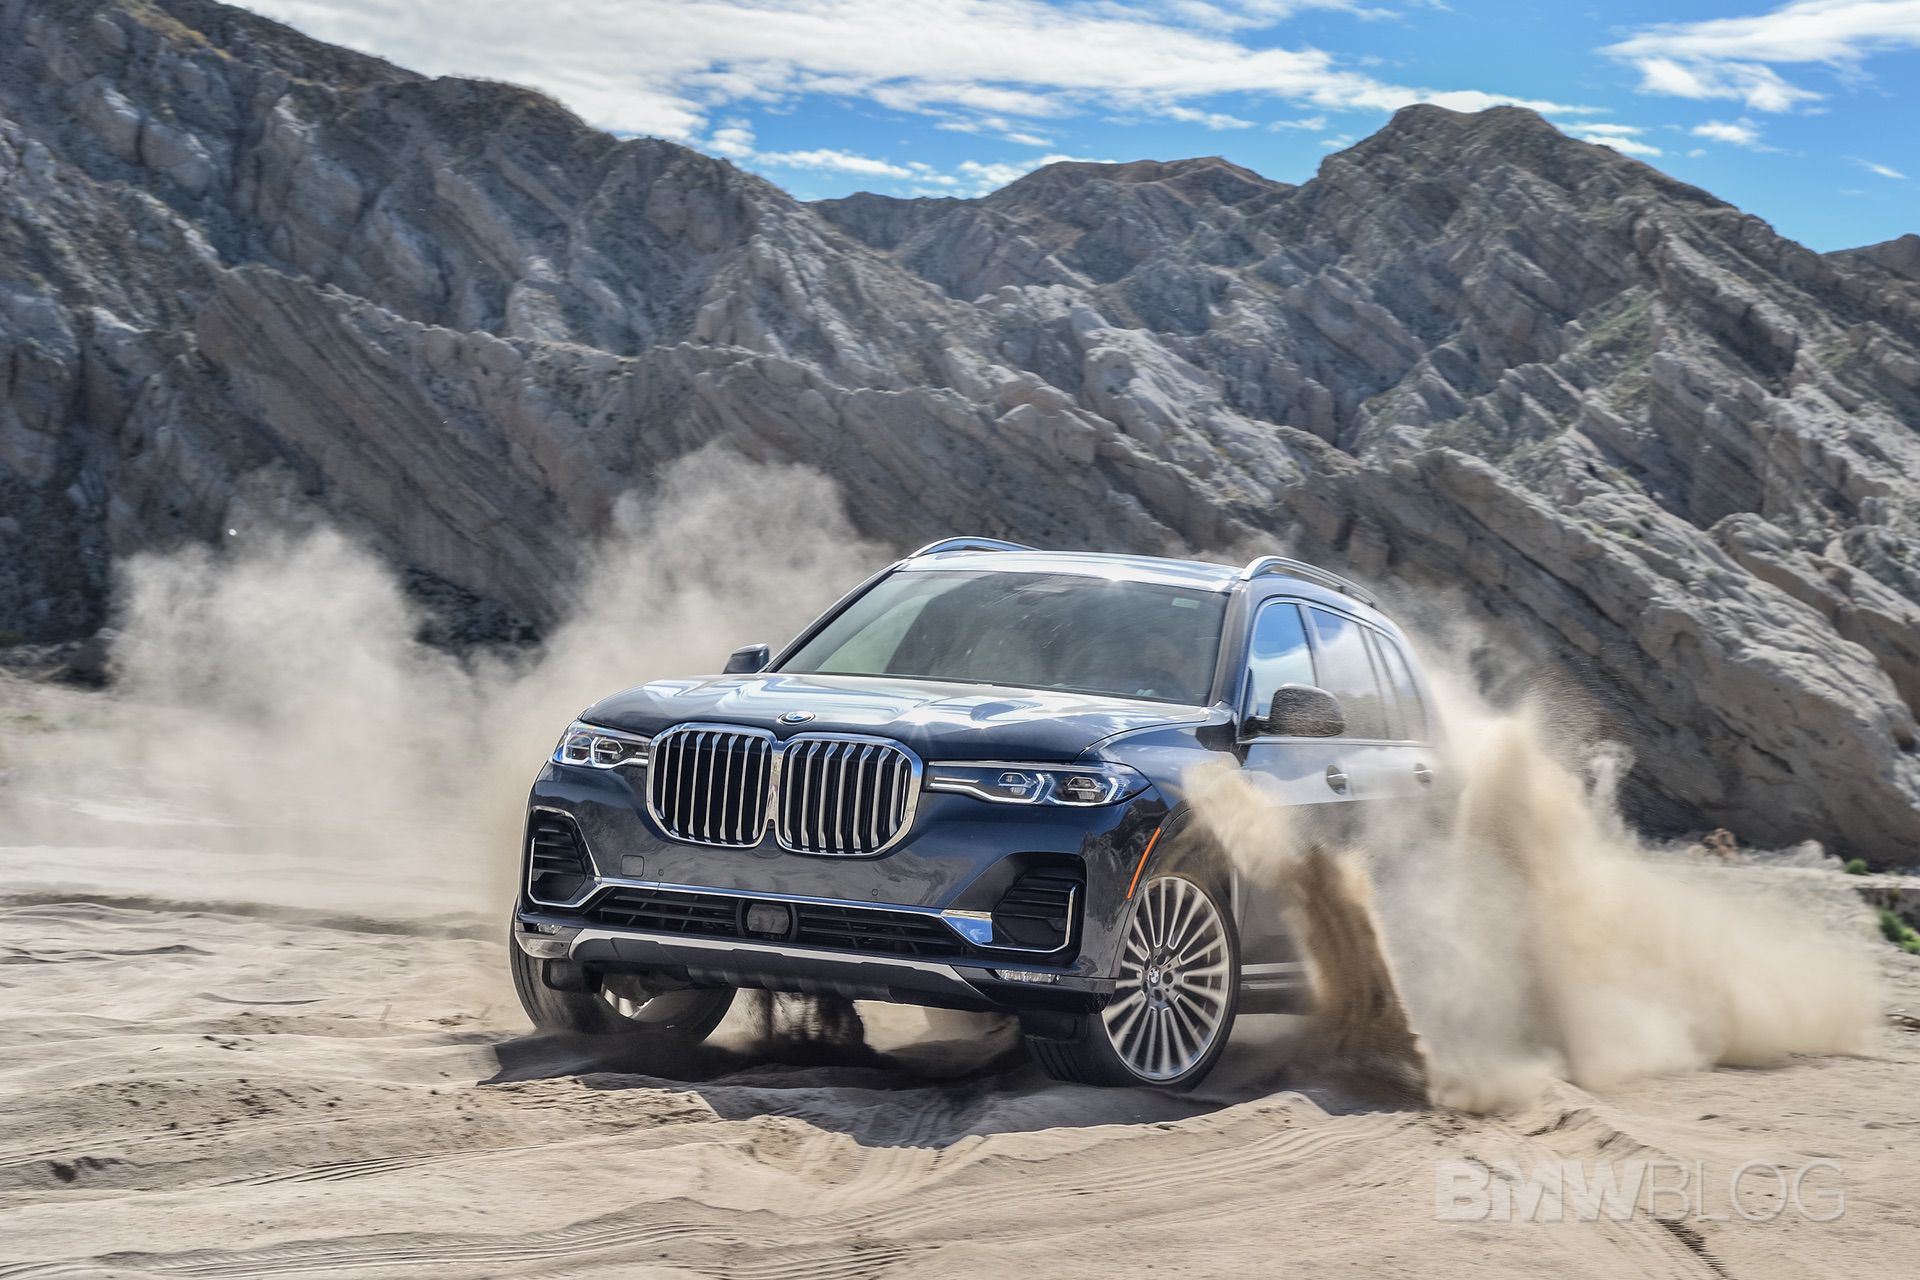 2019 BMW X7 off road 09